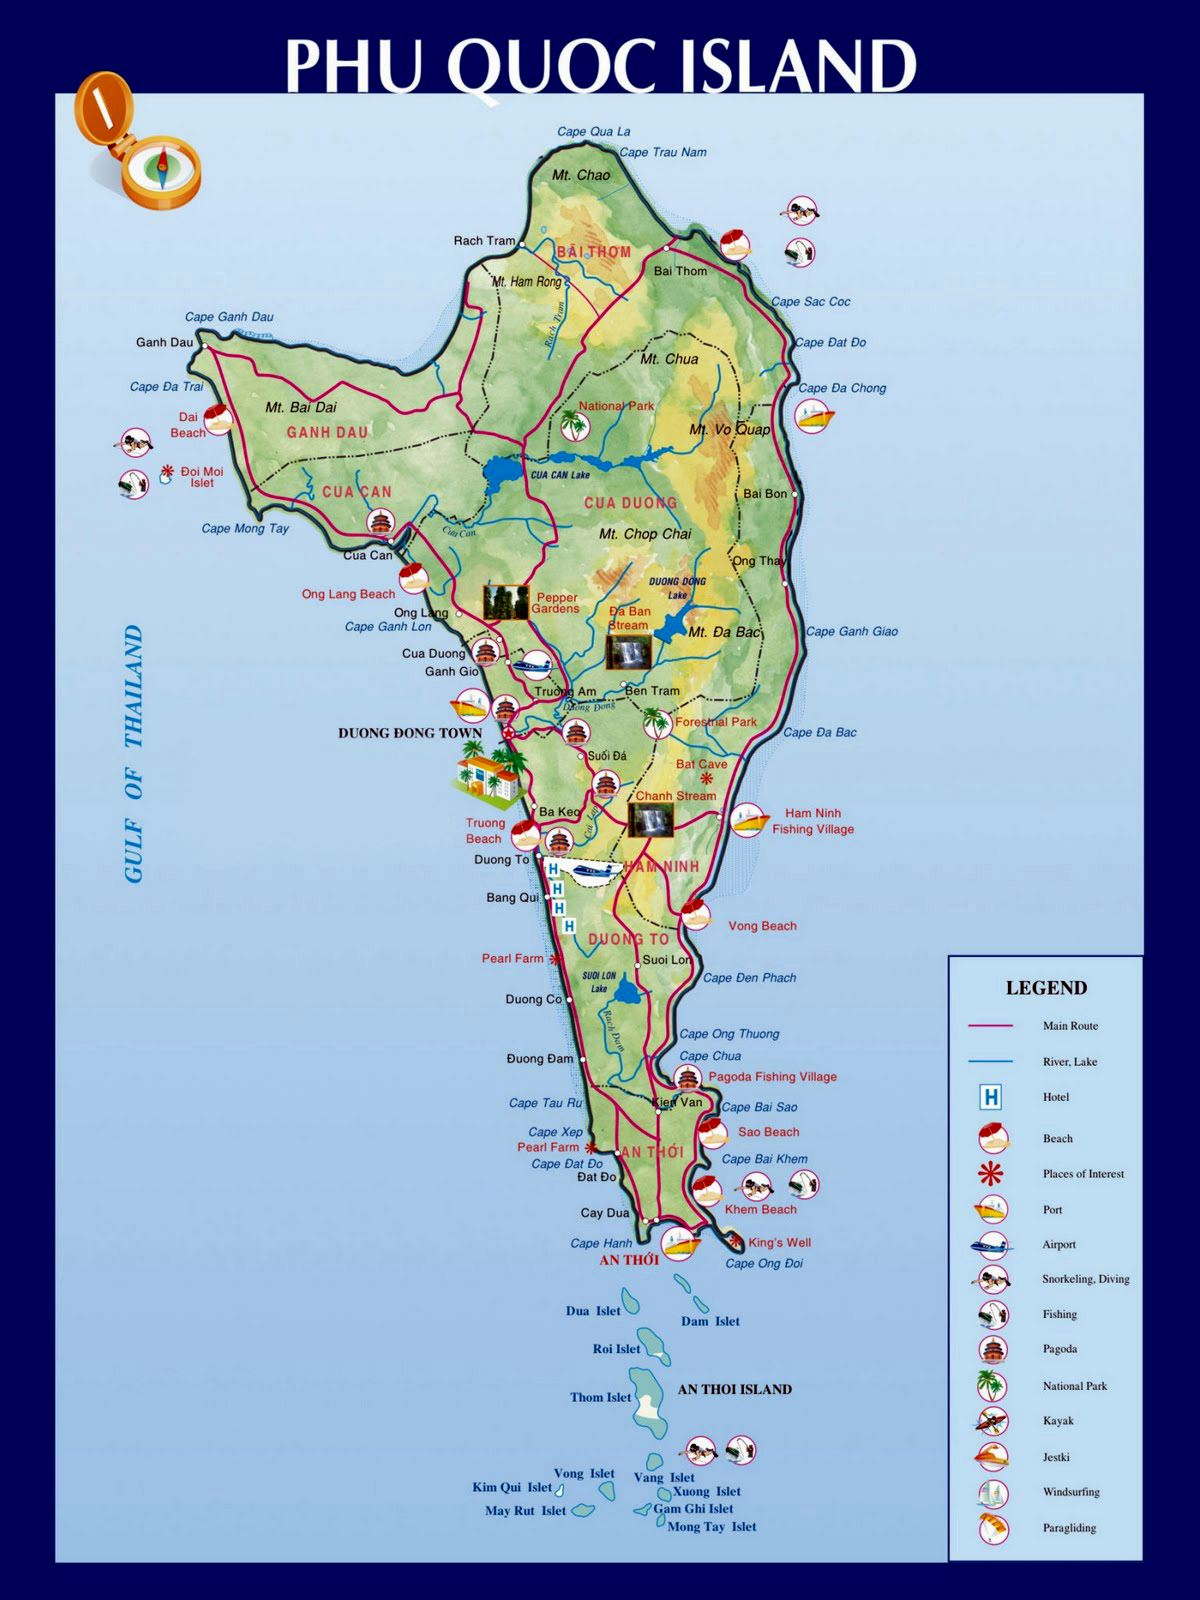 Map Of Phu Quoc Island Large Phu Quoc Island Maps for Free Download and Print | High